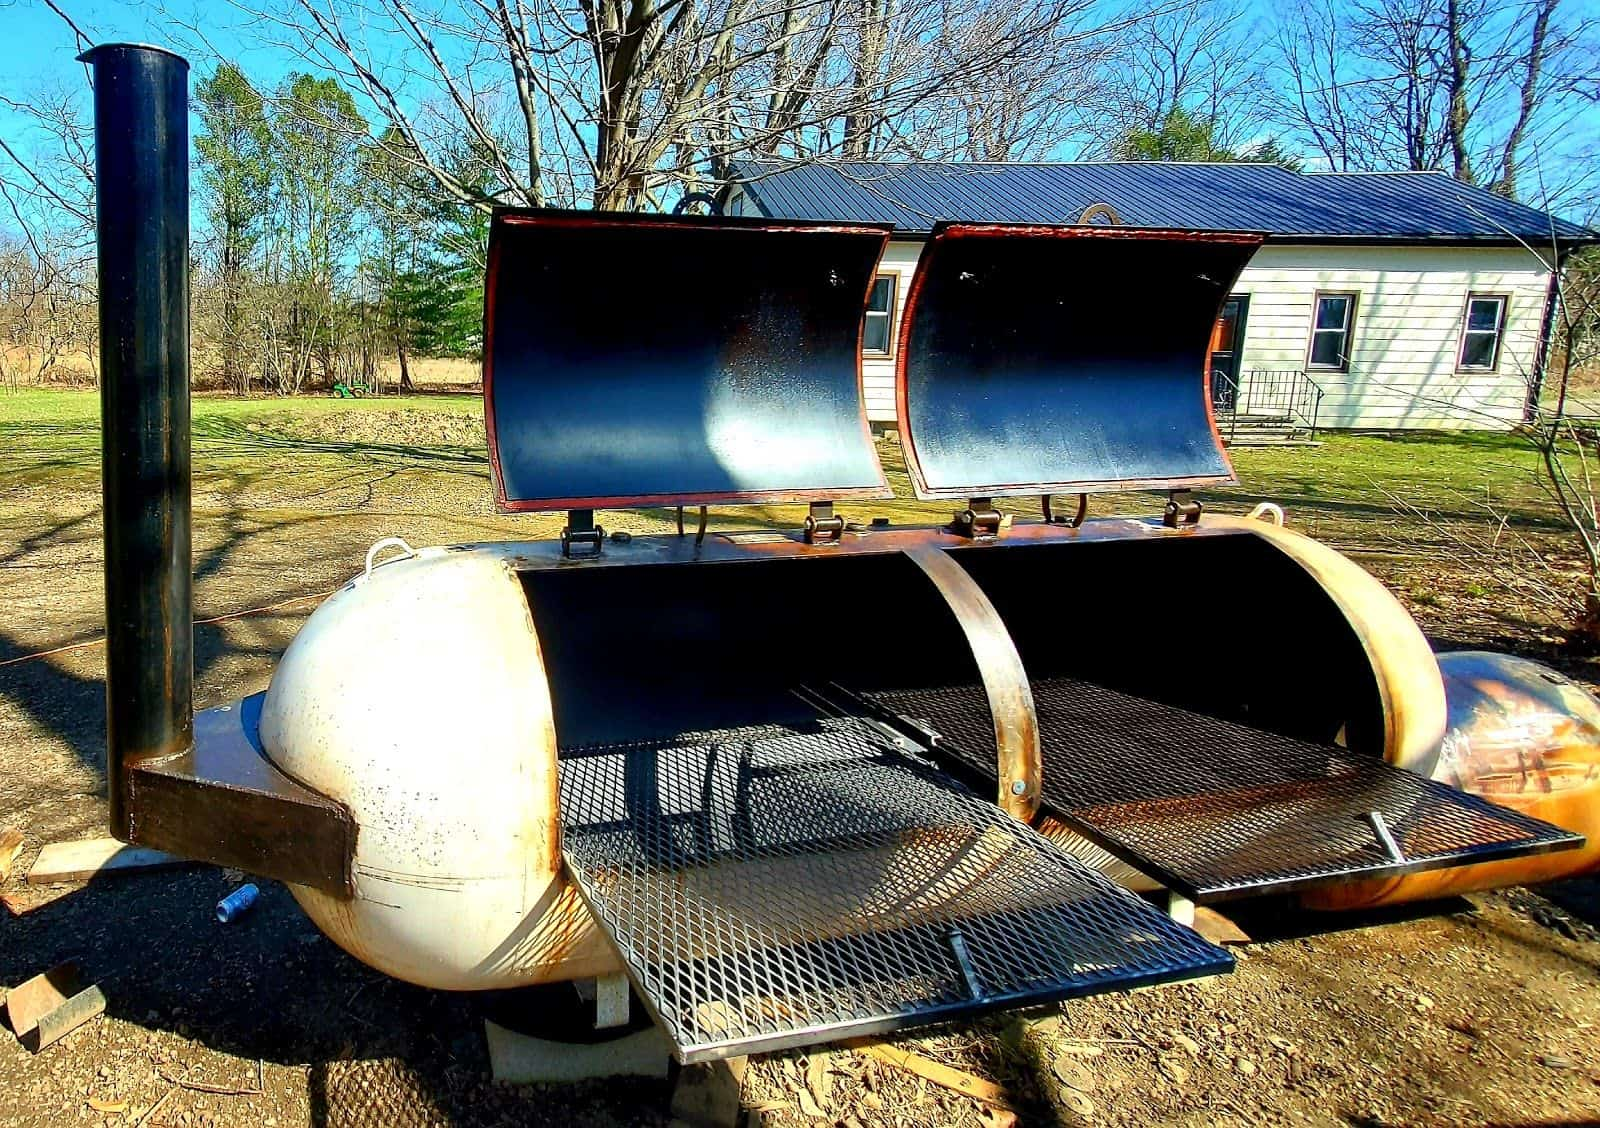 How To Build Your Own Smoker by Beau Reibel